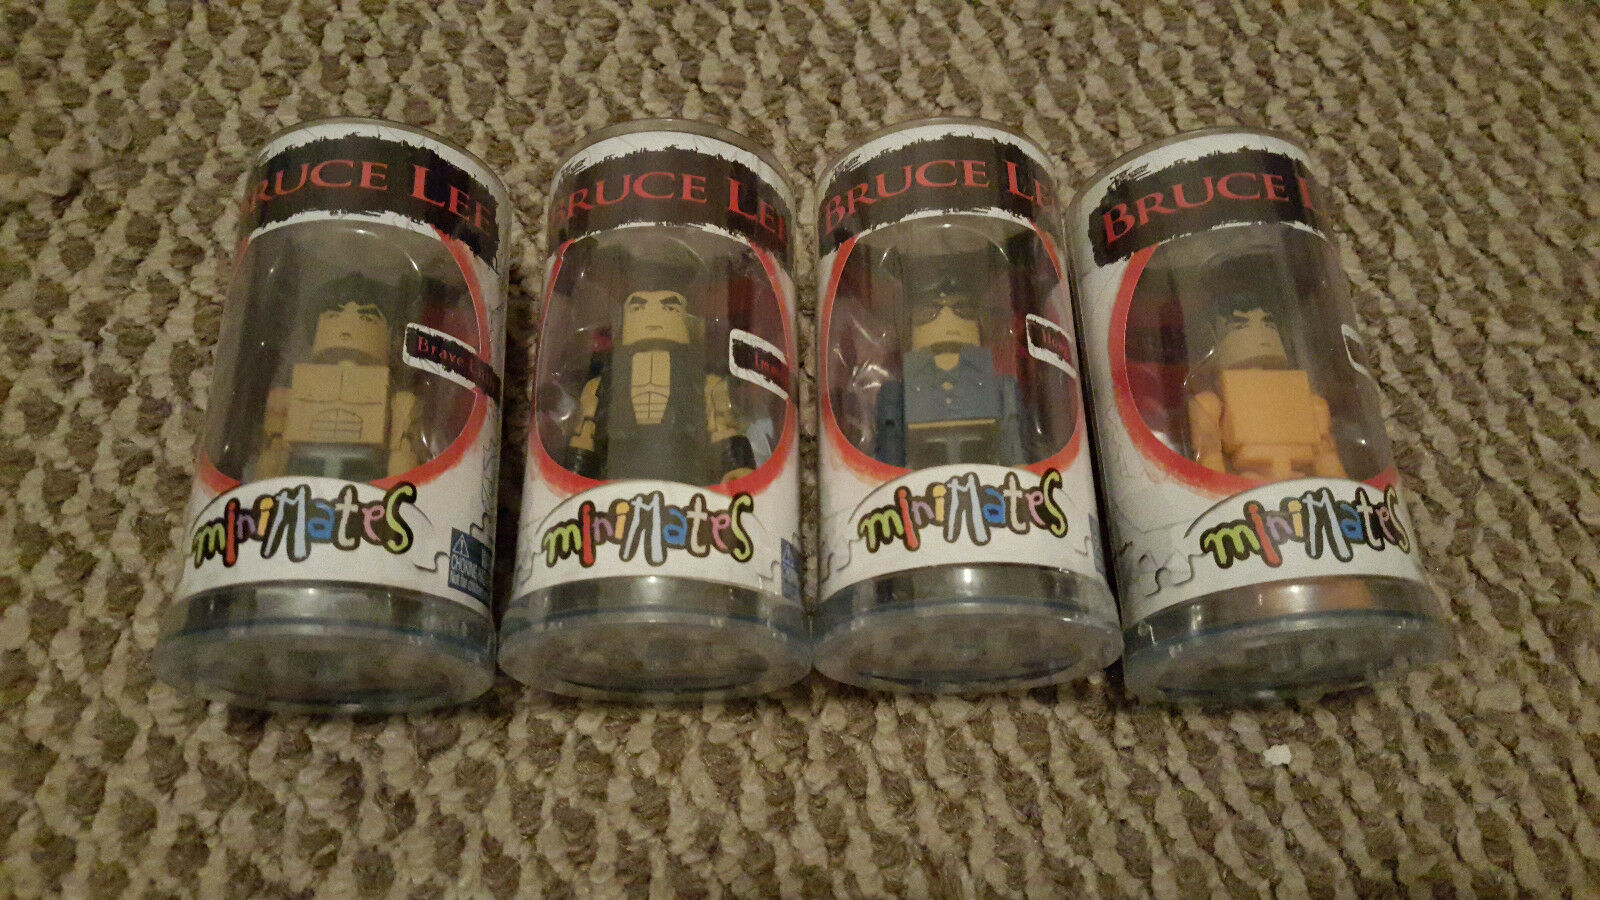 Bruce Lee Minimates Complete Set of 4 Action Figures made by Art Asylum